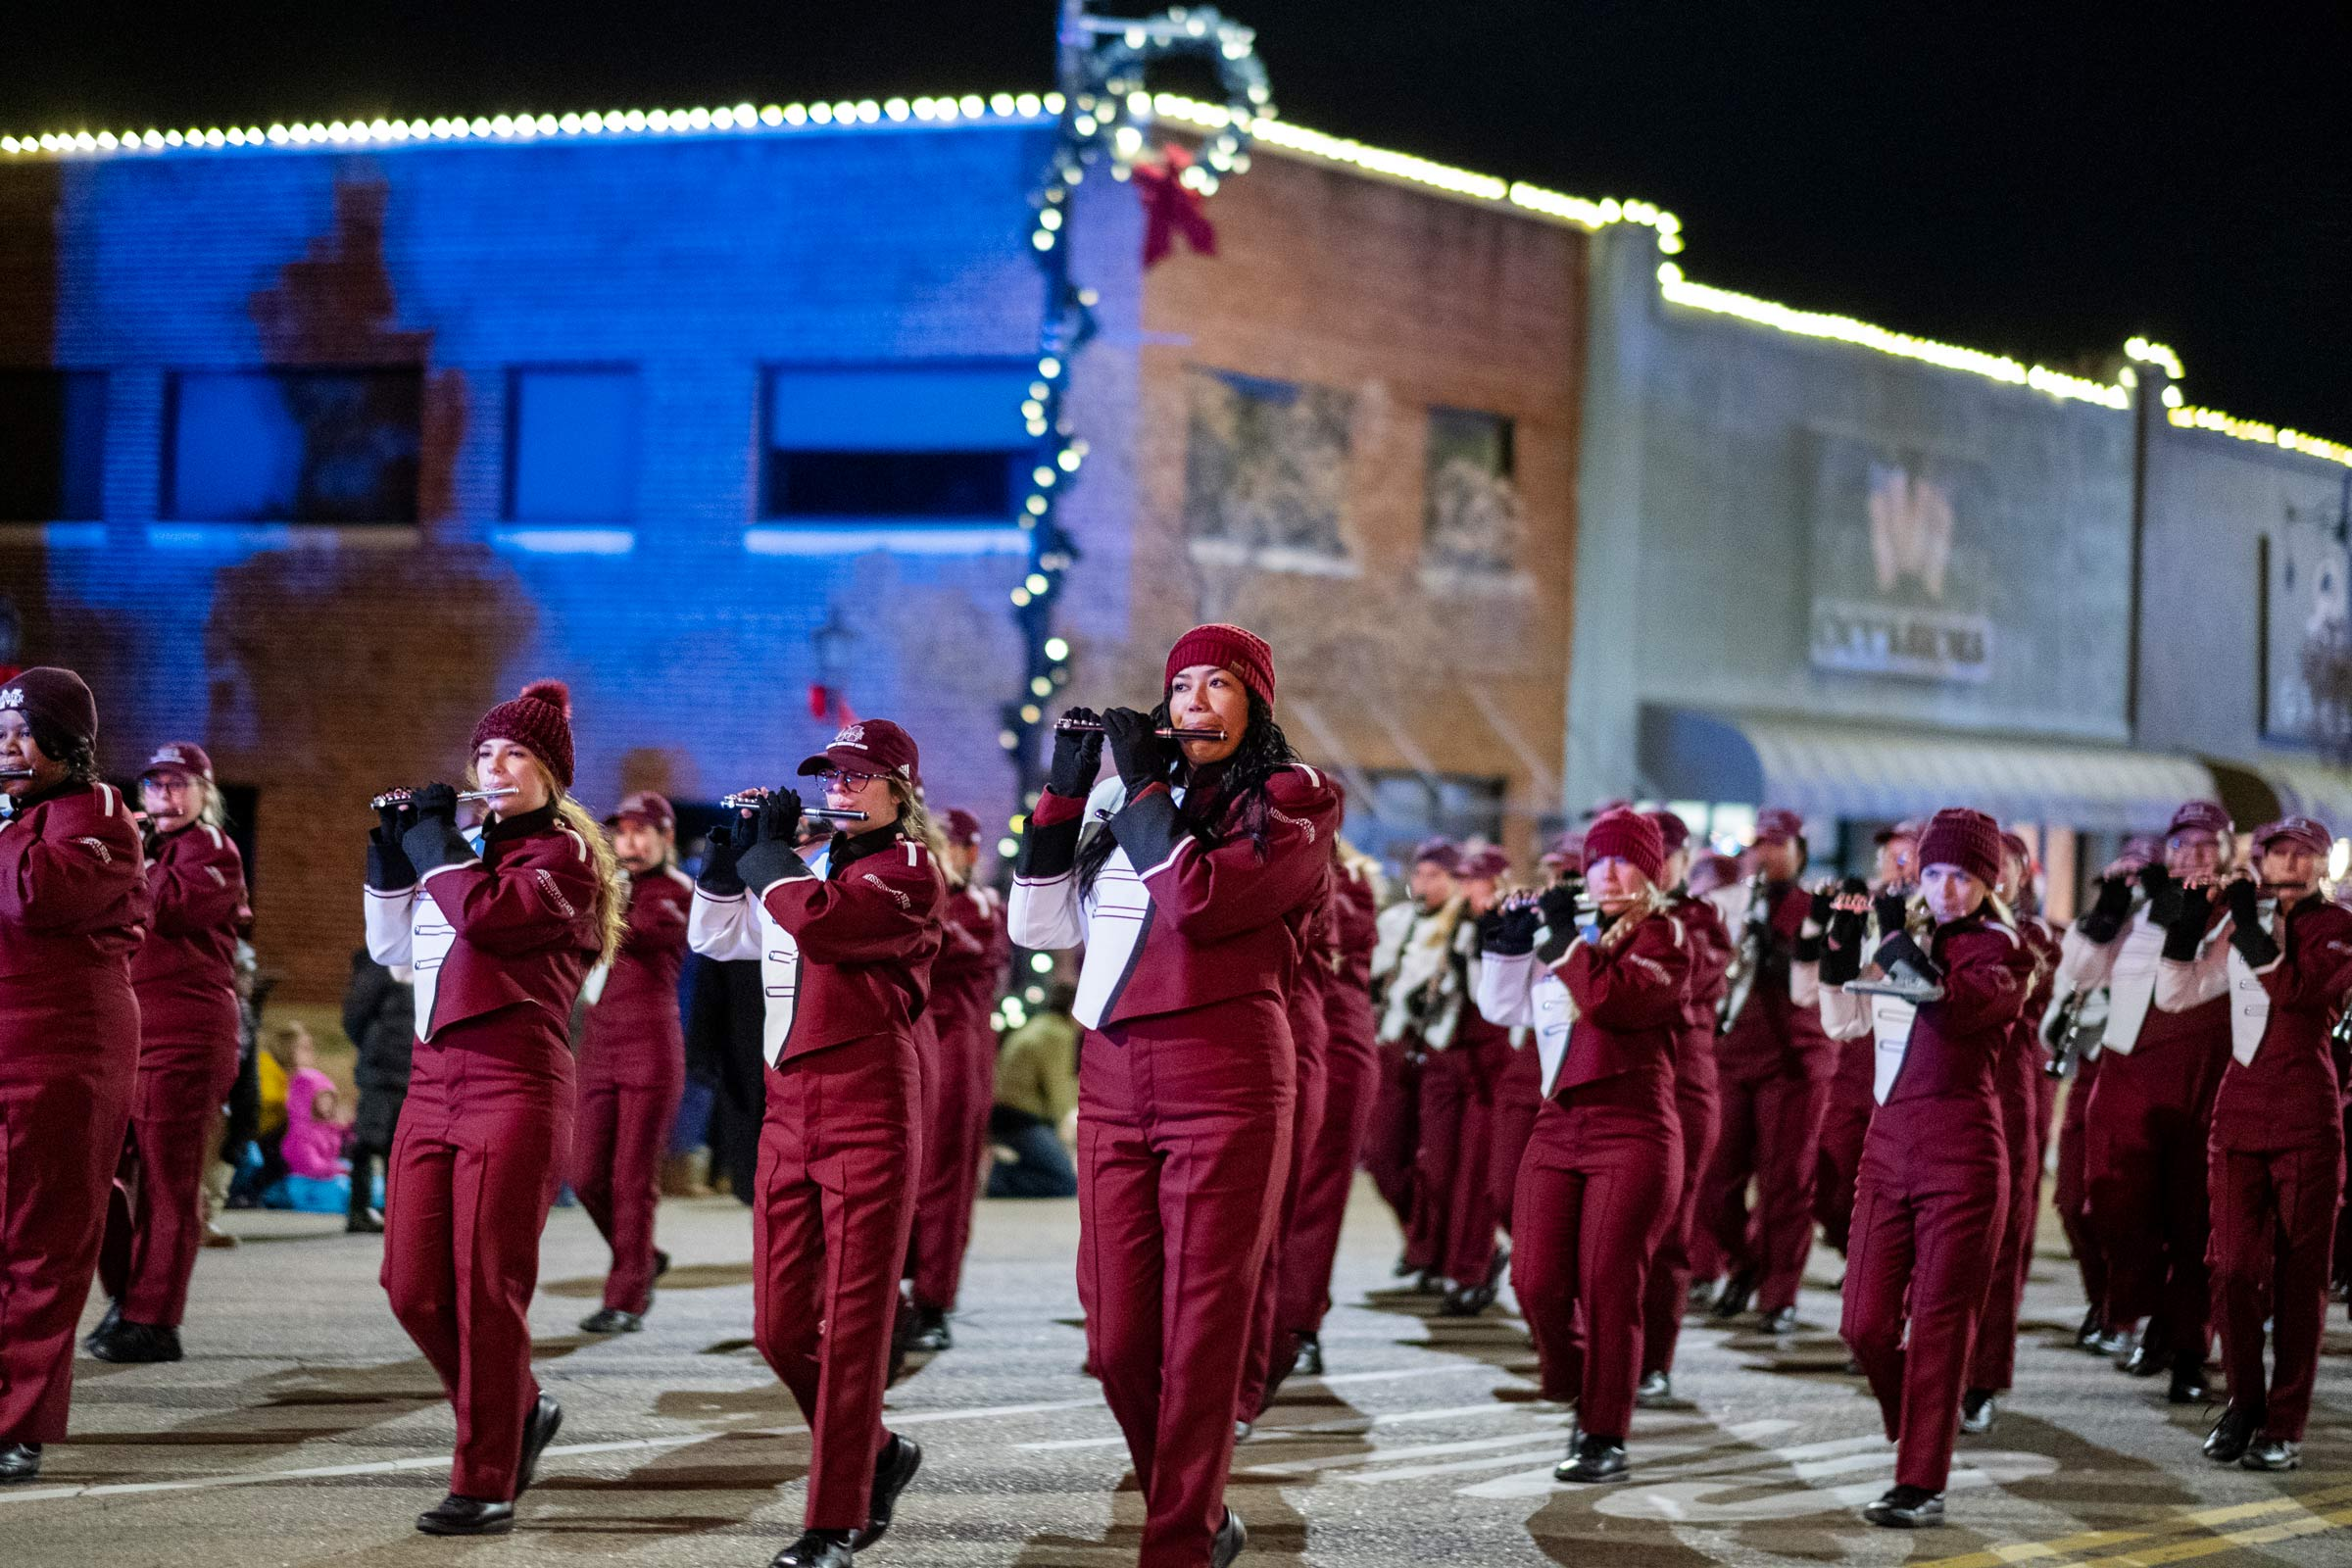 MSU's Famous Maroon Marching Band marches through downtown Starkville as part of the 2019 Christmas Parade.